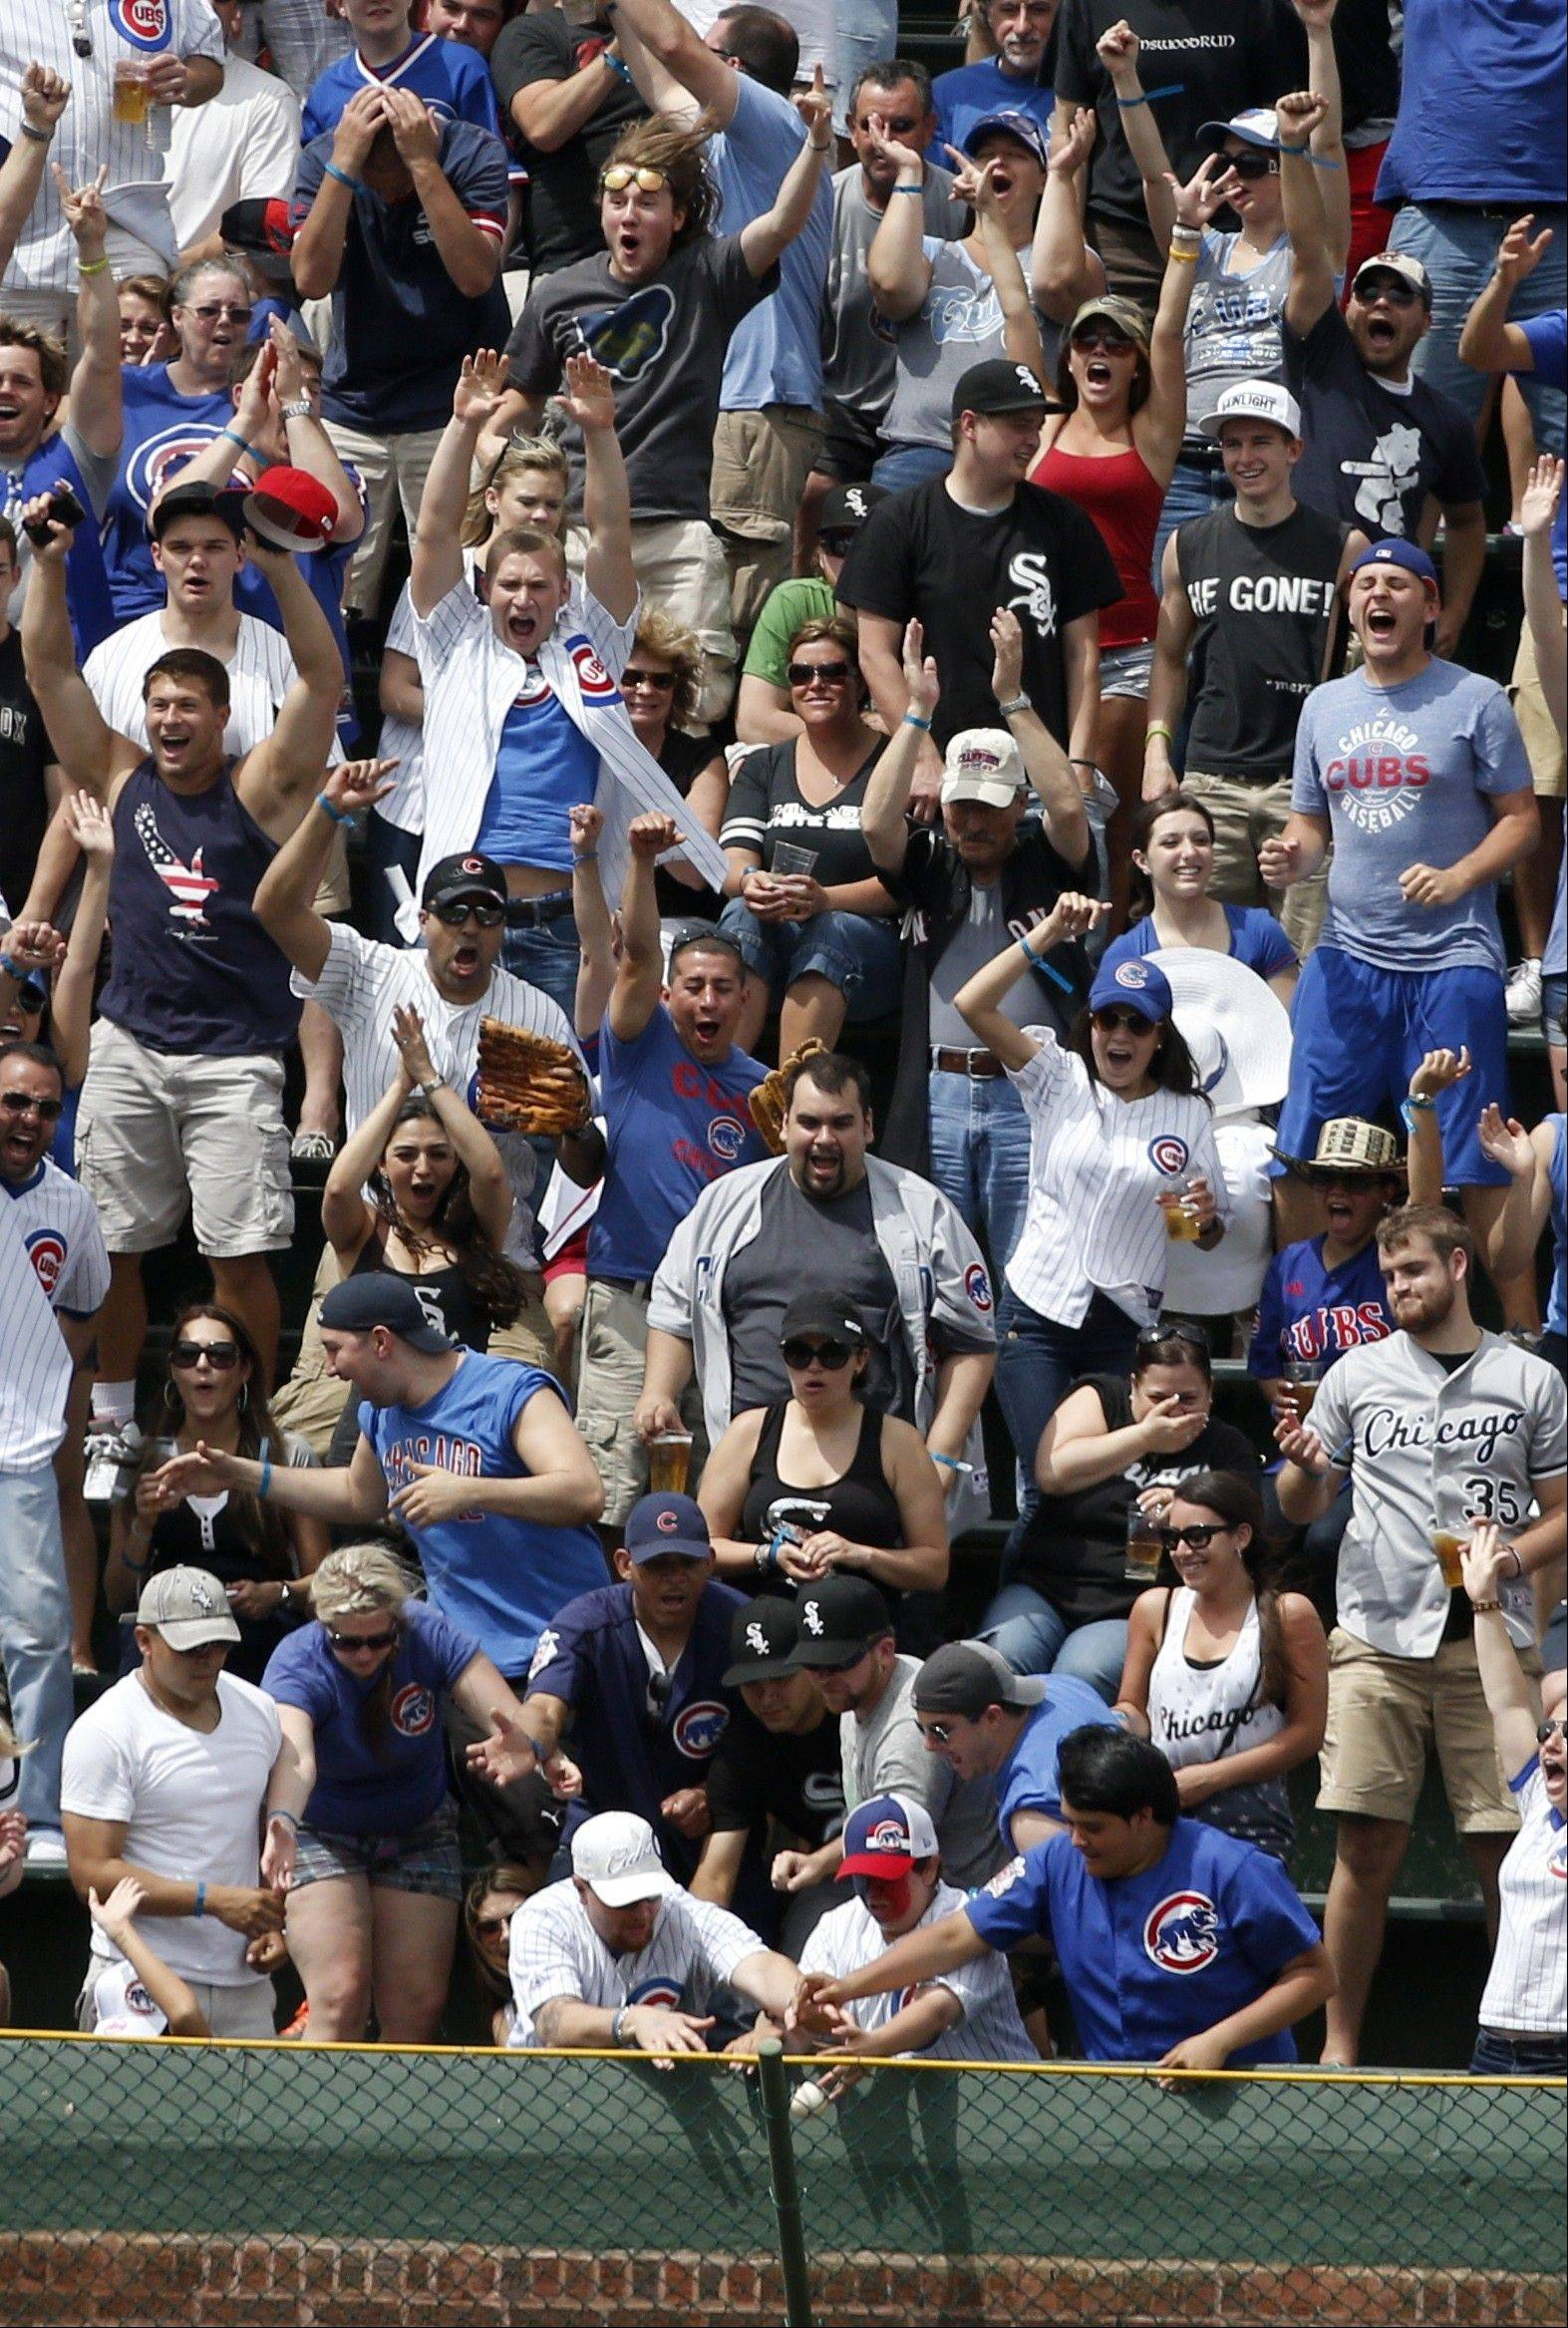 Fans in the left field bleachers scramble for a grand slam by Chicago Cubs' Travis Wood off Chicago White Sox starting pitcher Jake Peavy, as others cheer during the fourth inning of an interleague baseball game Thursday, May 30, 2013, in Chicago.